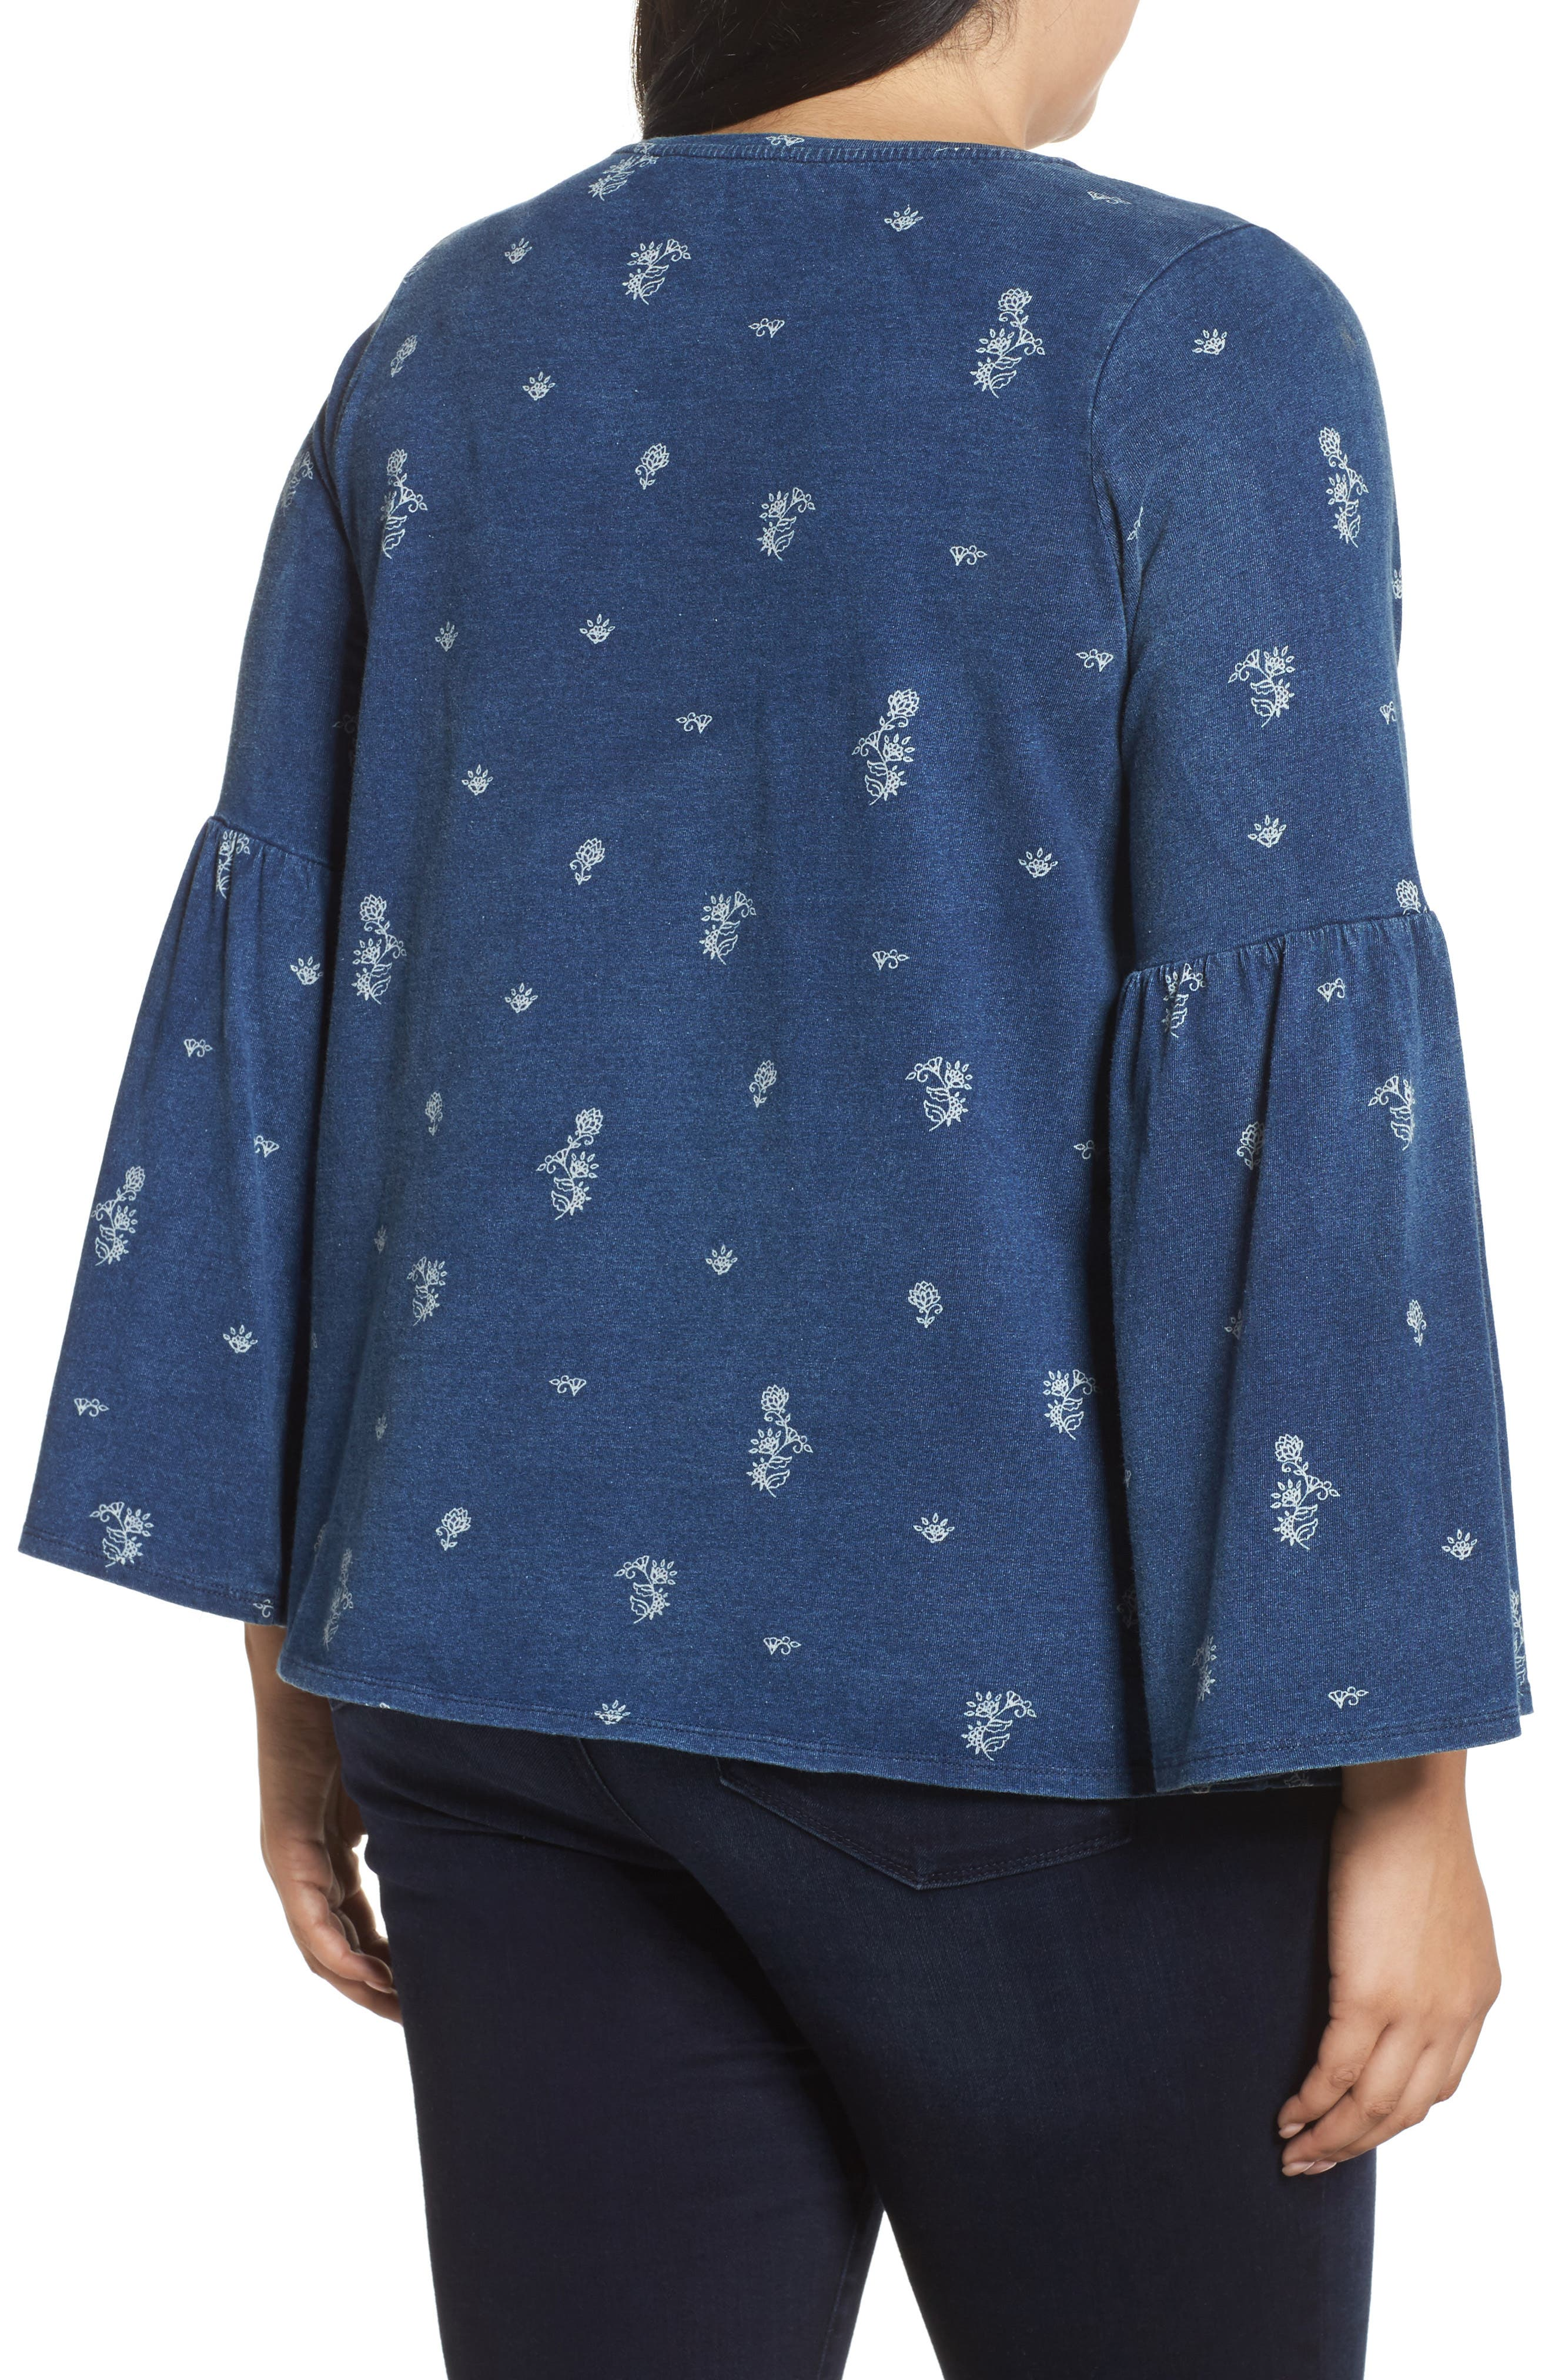 TWO BY VINCE CAMUTO, Ditzy Floral Print Bell Sleeve Top, Alternate thumbnail 2, color, TRUE INDIGO